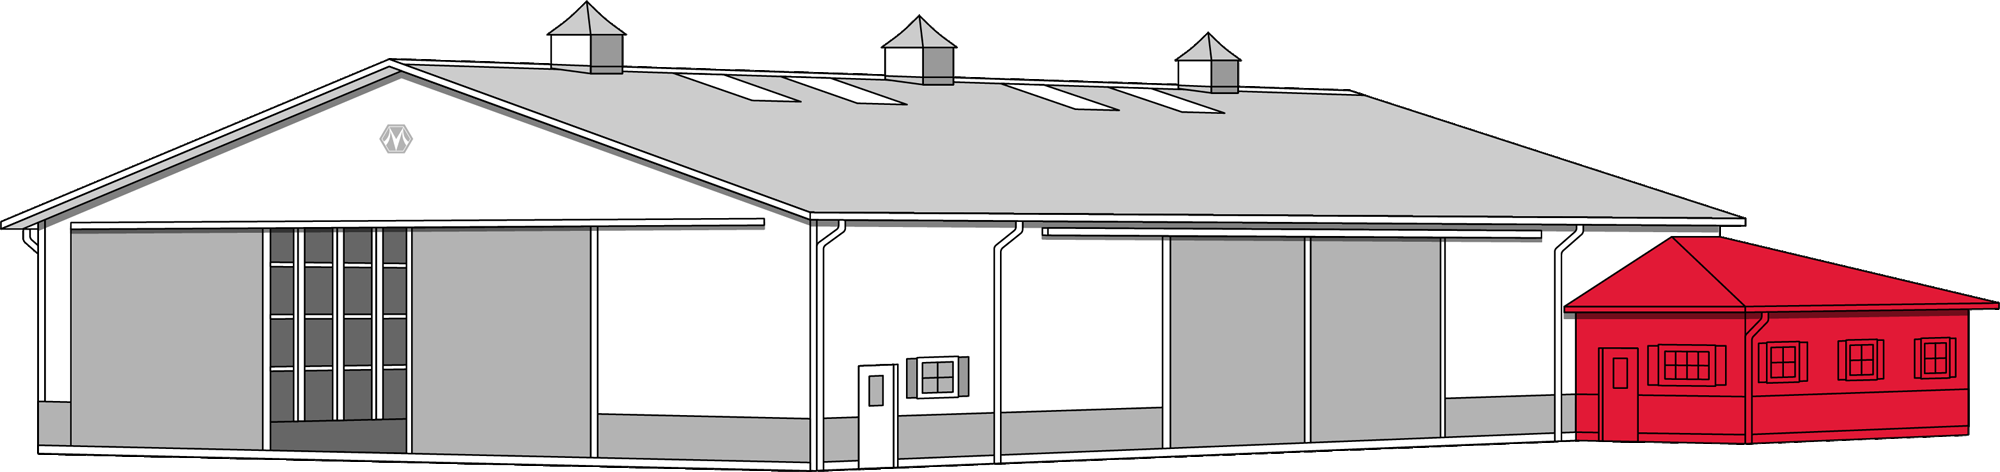 svg black and white library Repairs morton buildings building. Warehouse clipart pole barn